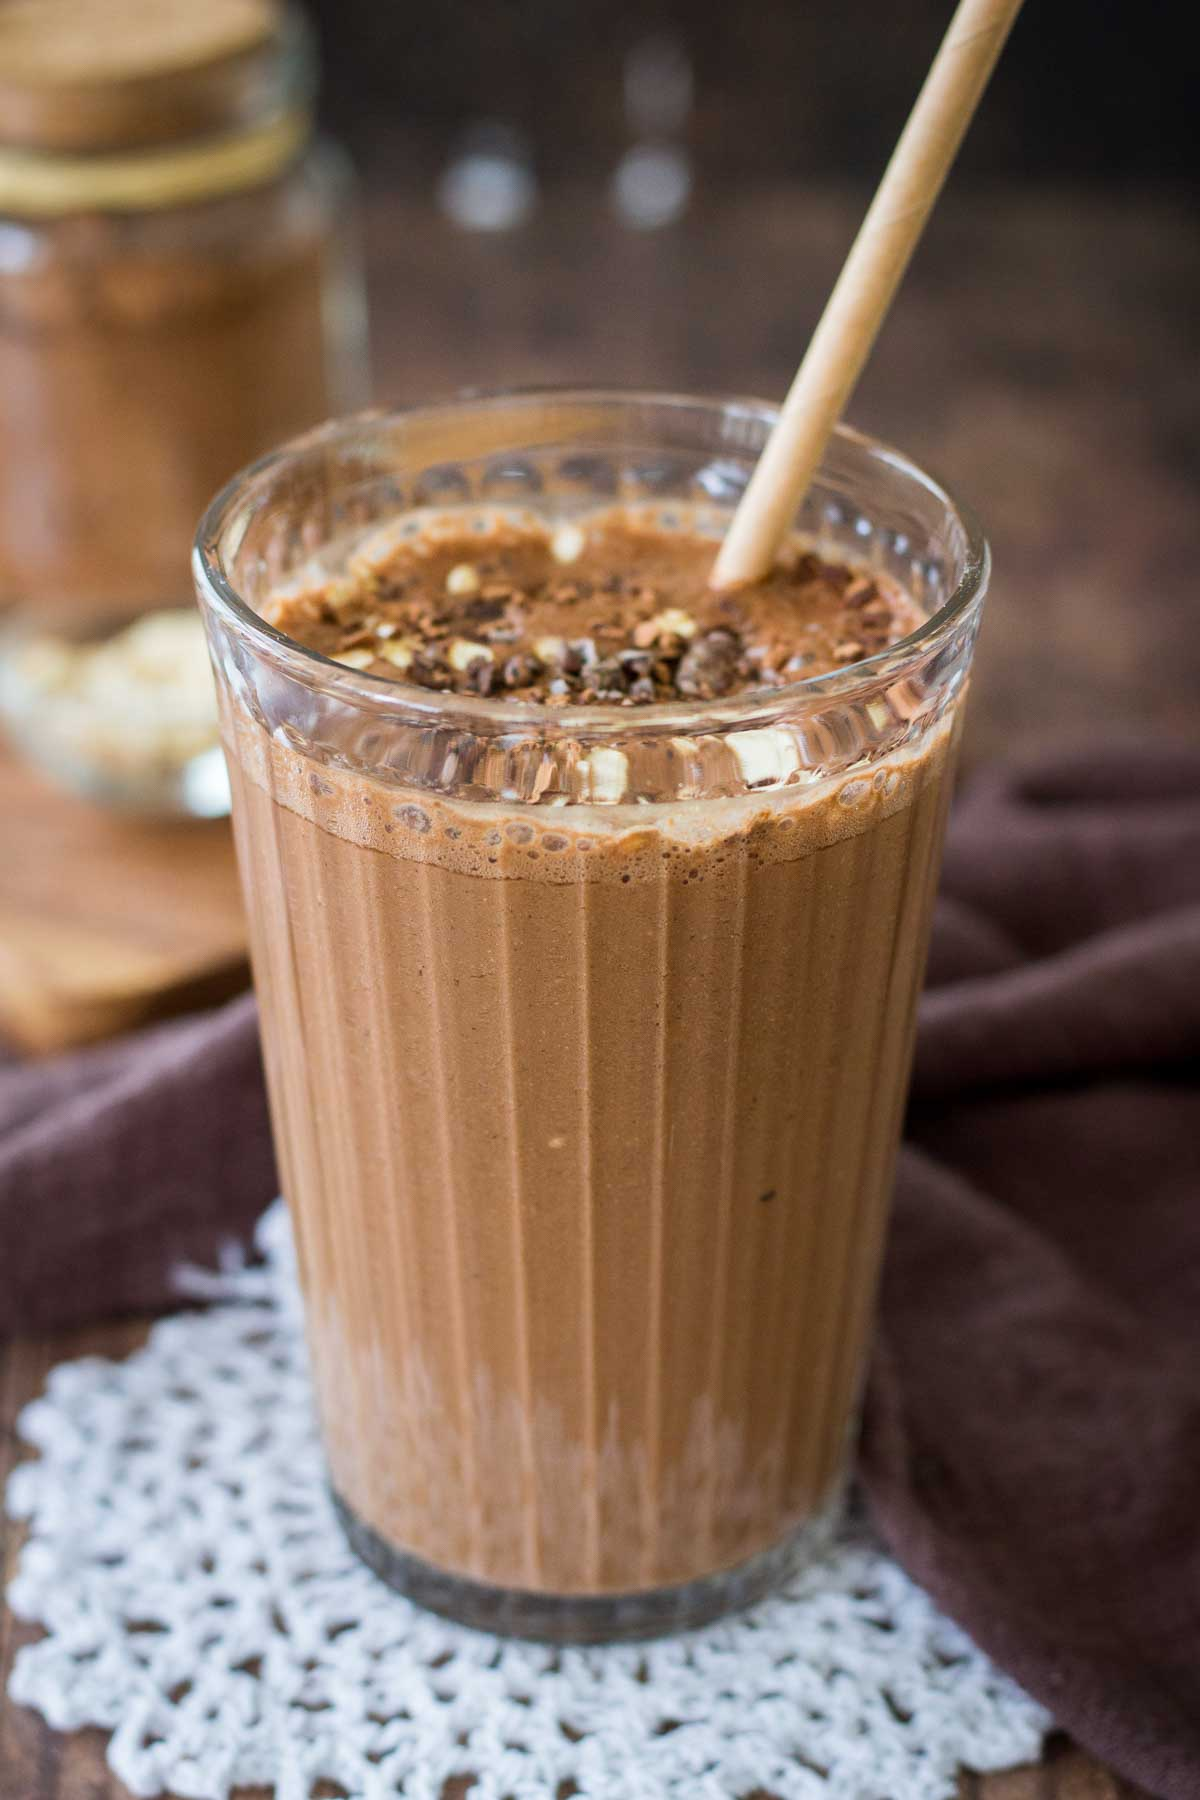 Coffee Smoothie served in a smoothie glass with a straw